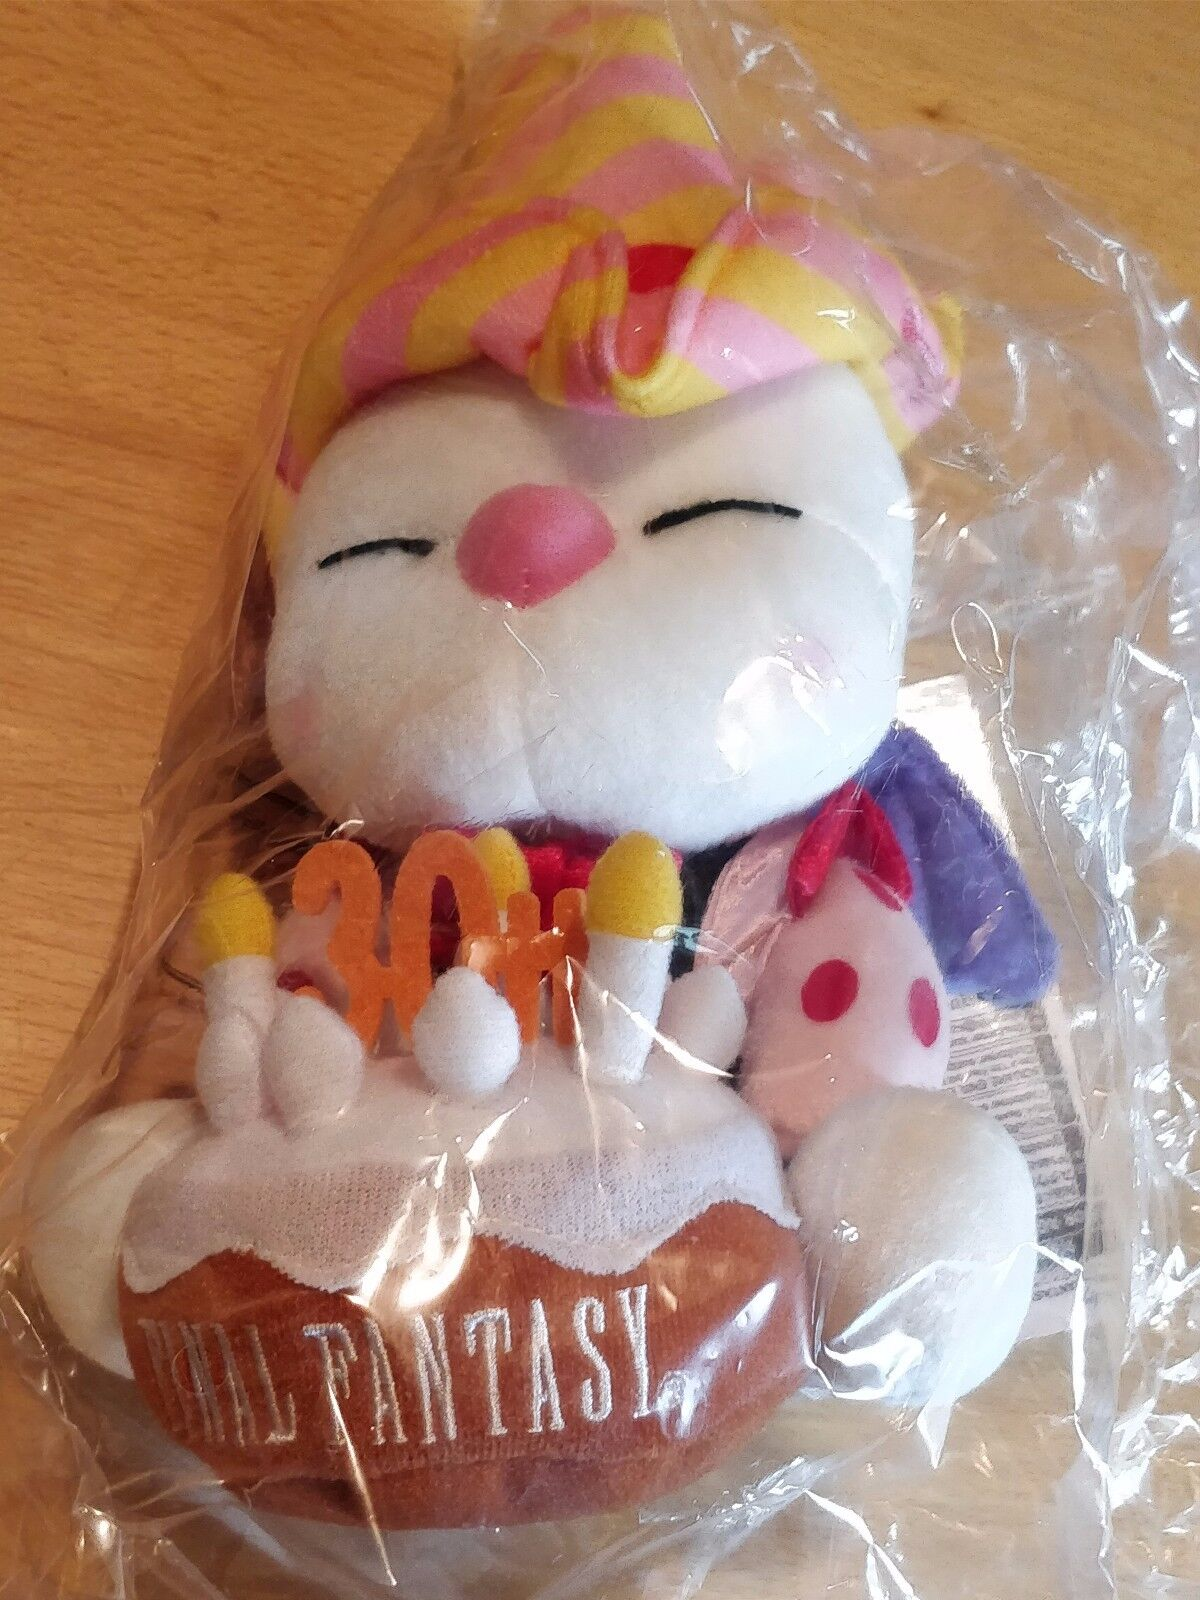 OFFICIAL FINAL FANTASY 30TH ANNIVERSARY MOOGLE PLUSH SOFT TOY - NEW AND SEALED